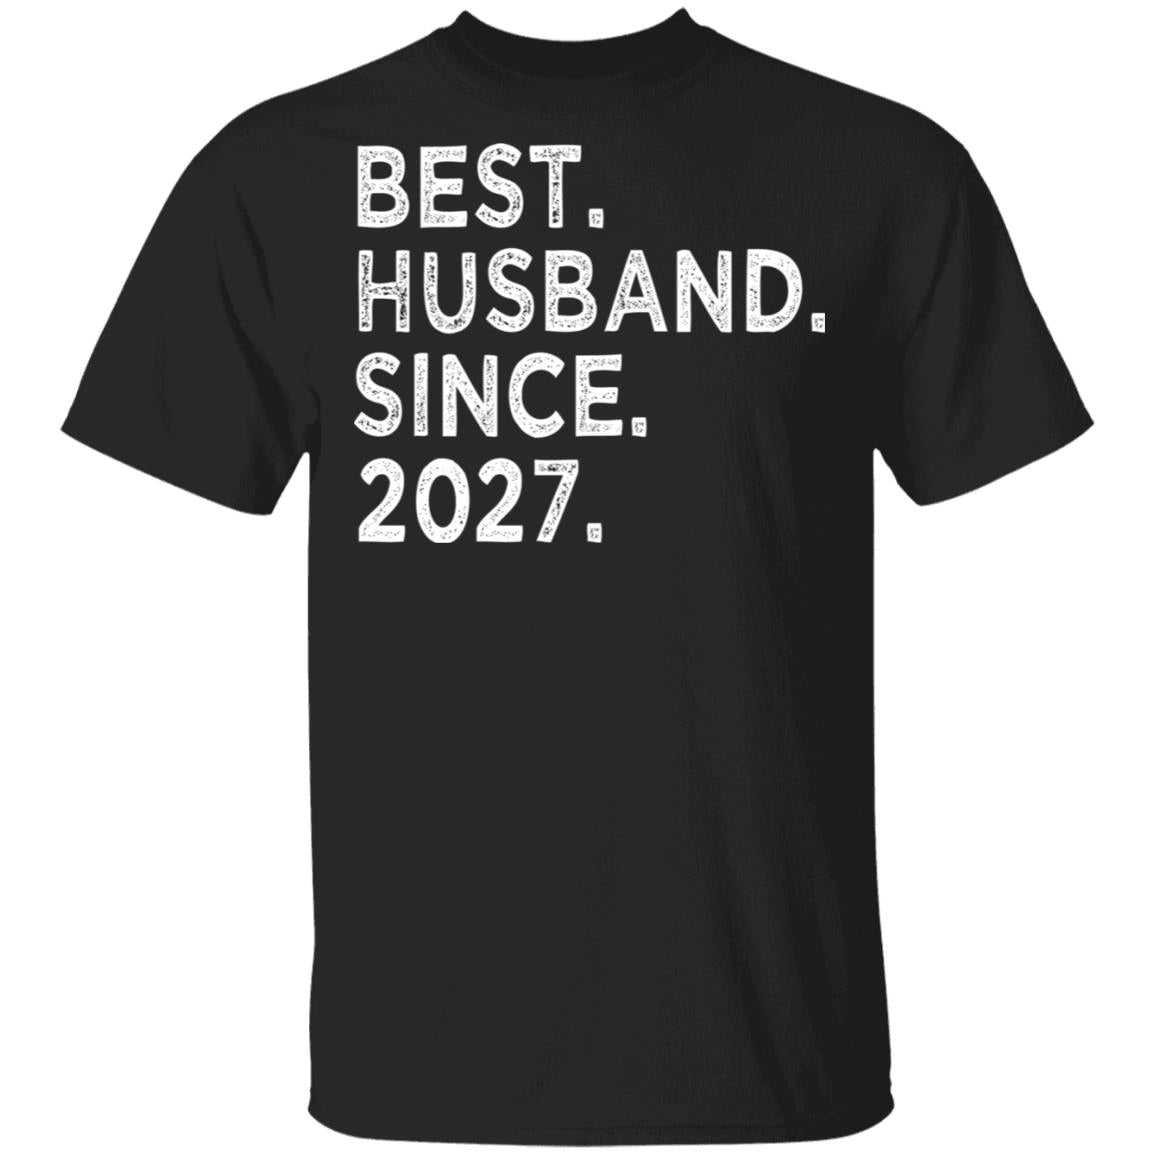 Best-husband-since-2027-wedding-anniversary-t-shirt 99promocode